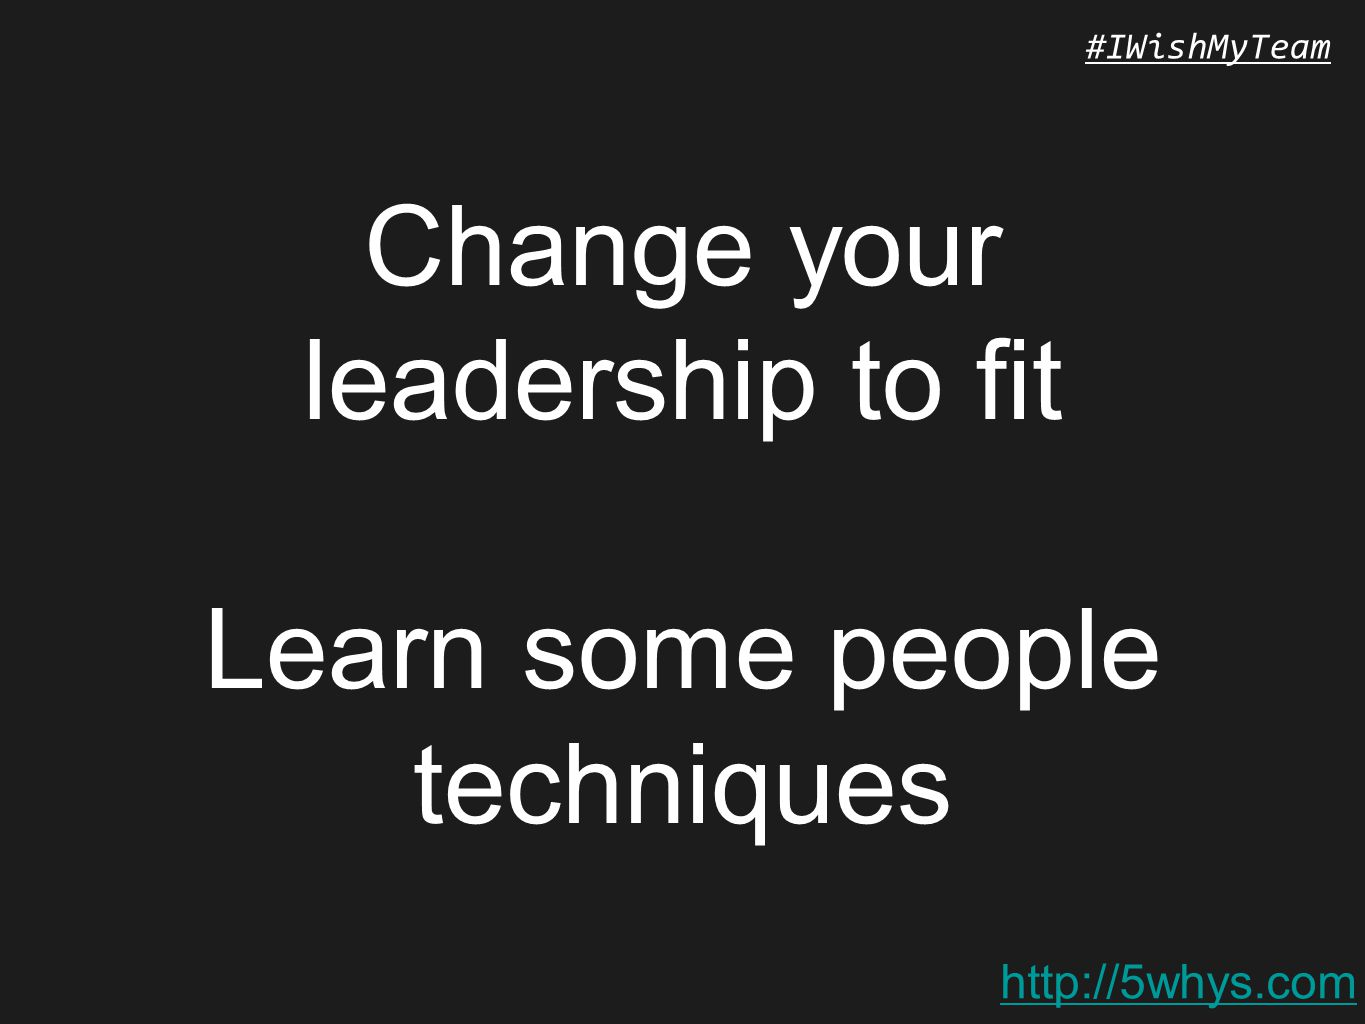 http://5whys.com #IWishMyTeam Change your leadership to fit Learn some people techniques